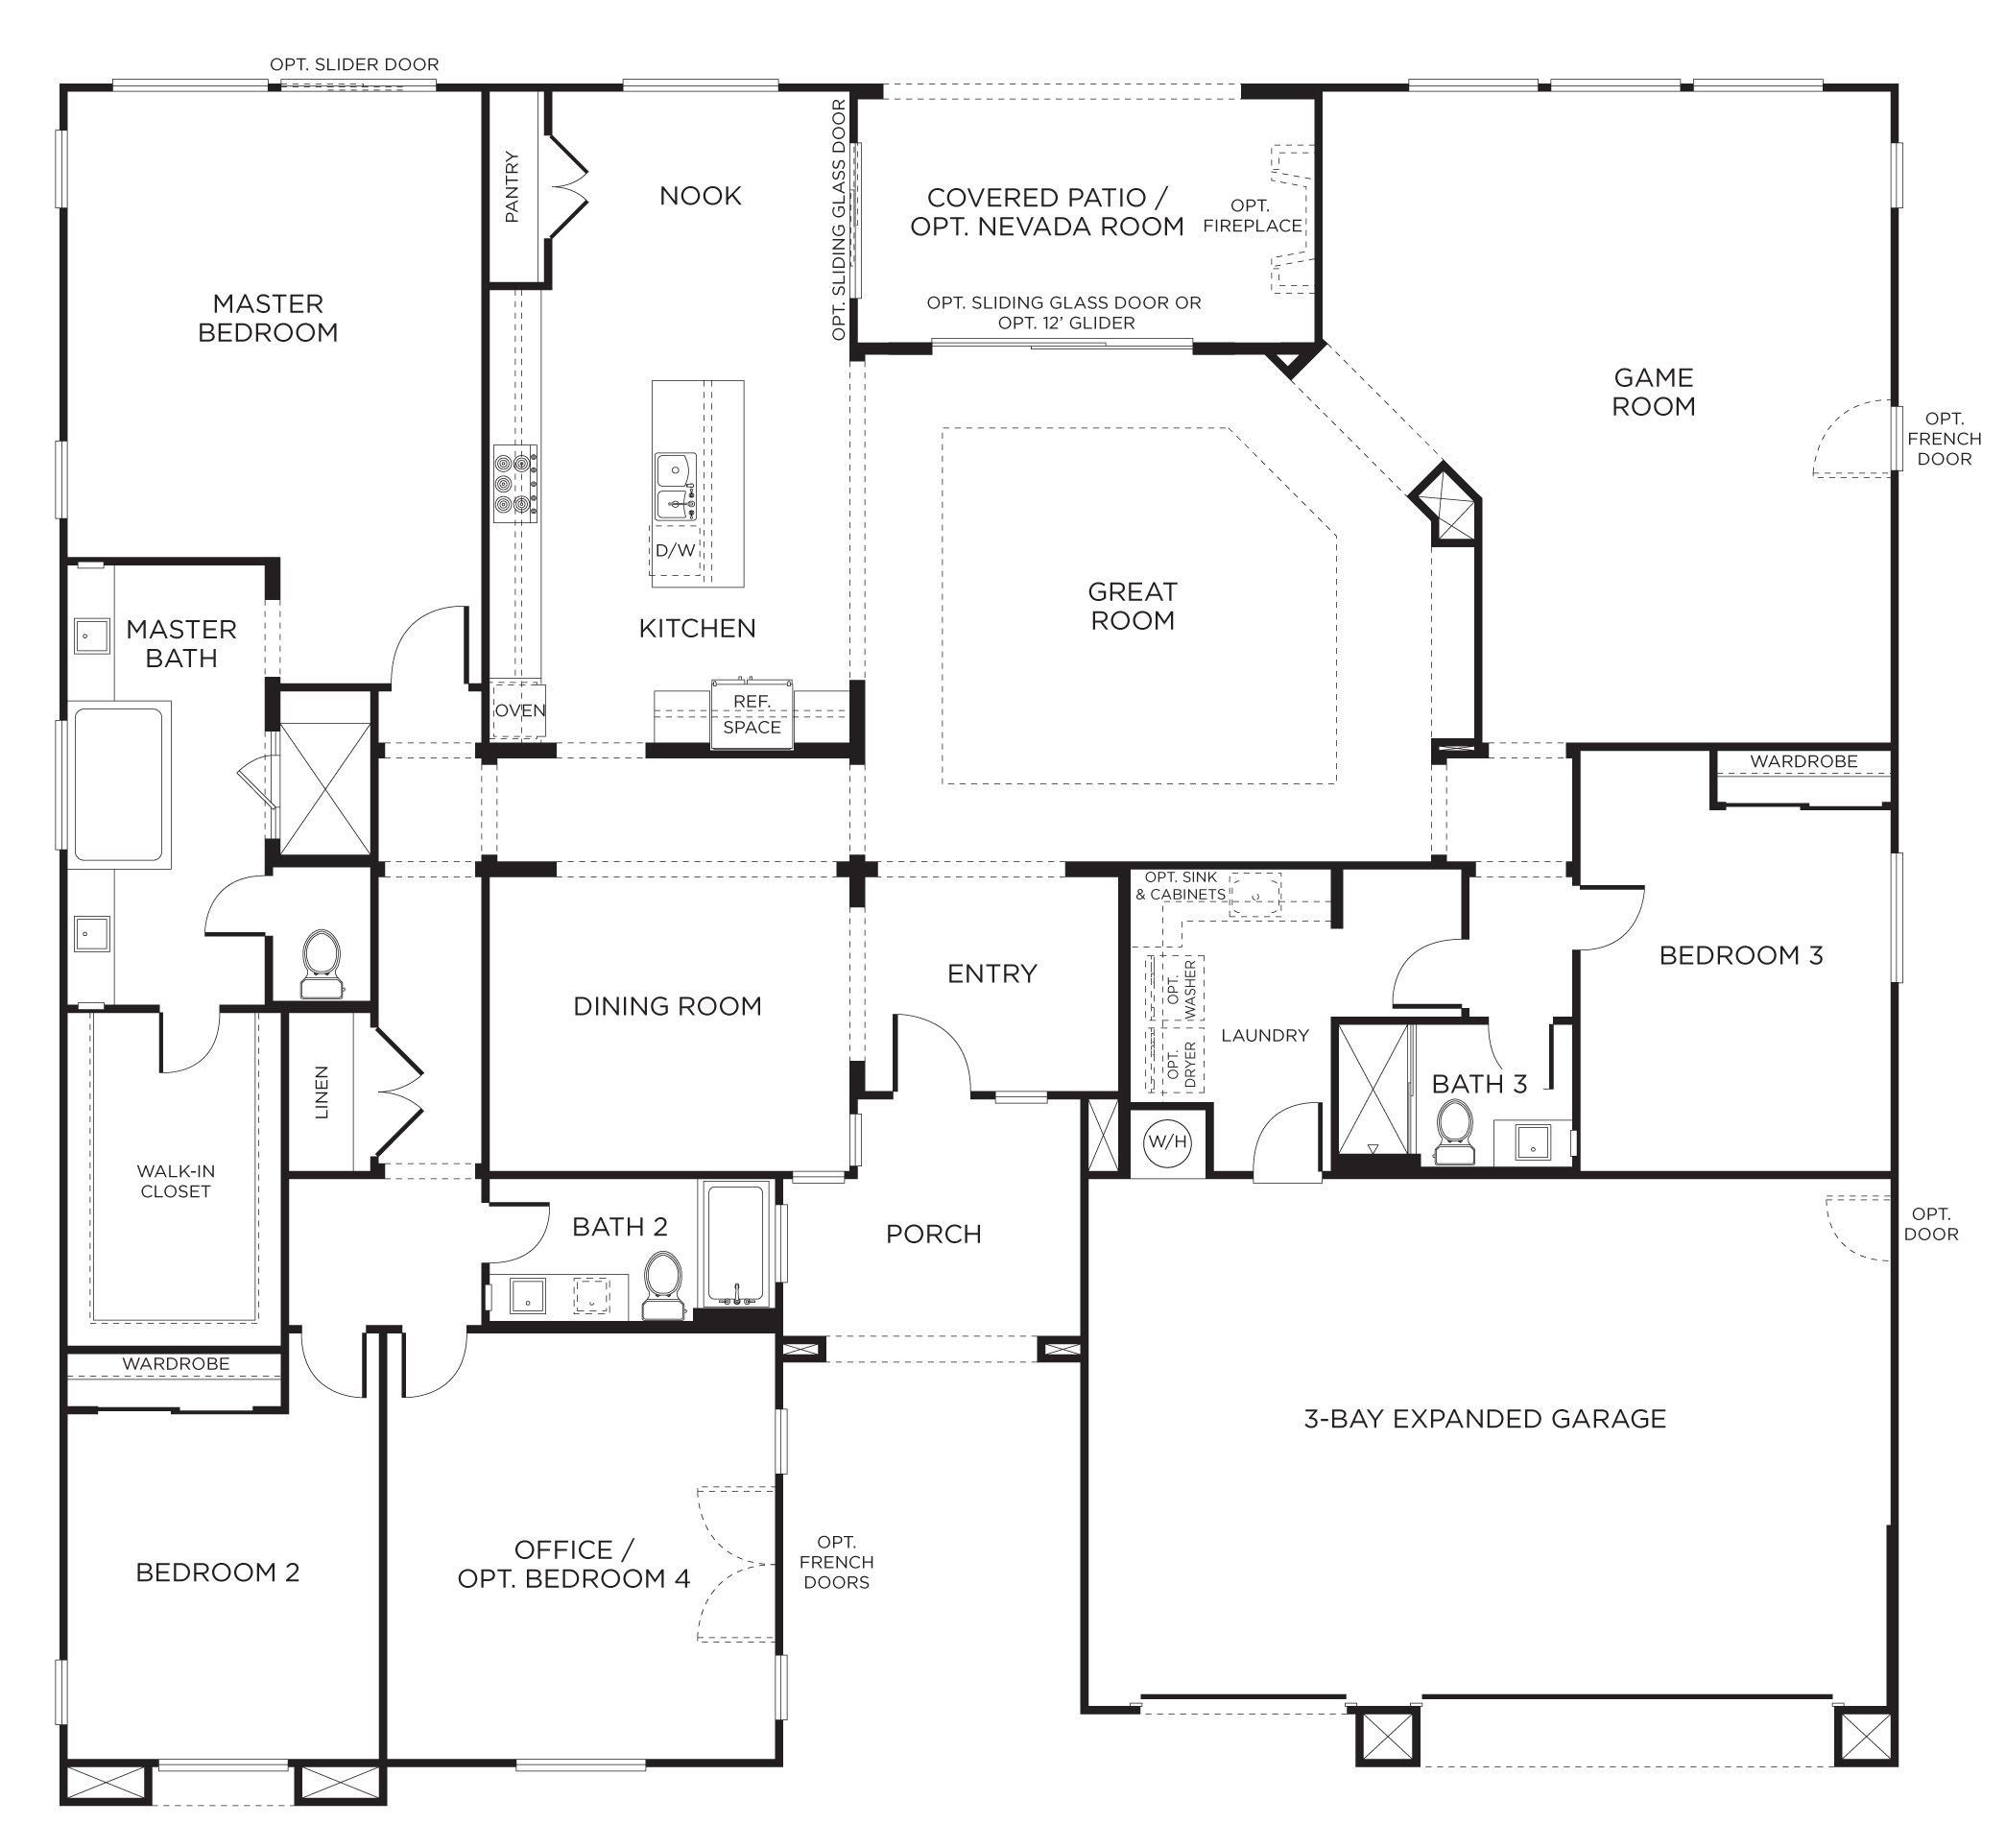 Floorplan 2 3 4 bedrooms 3 bathrooms 3400 square feet One story building plans